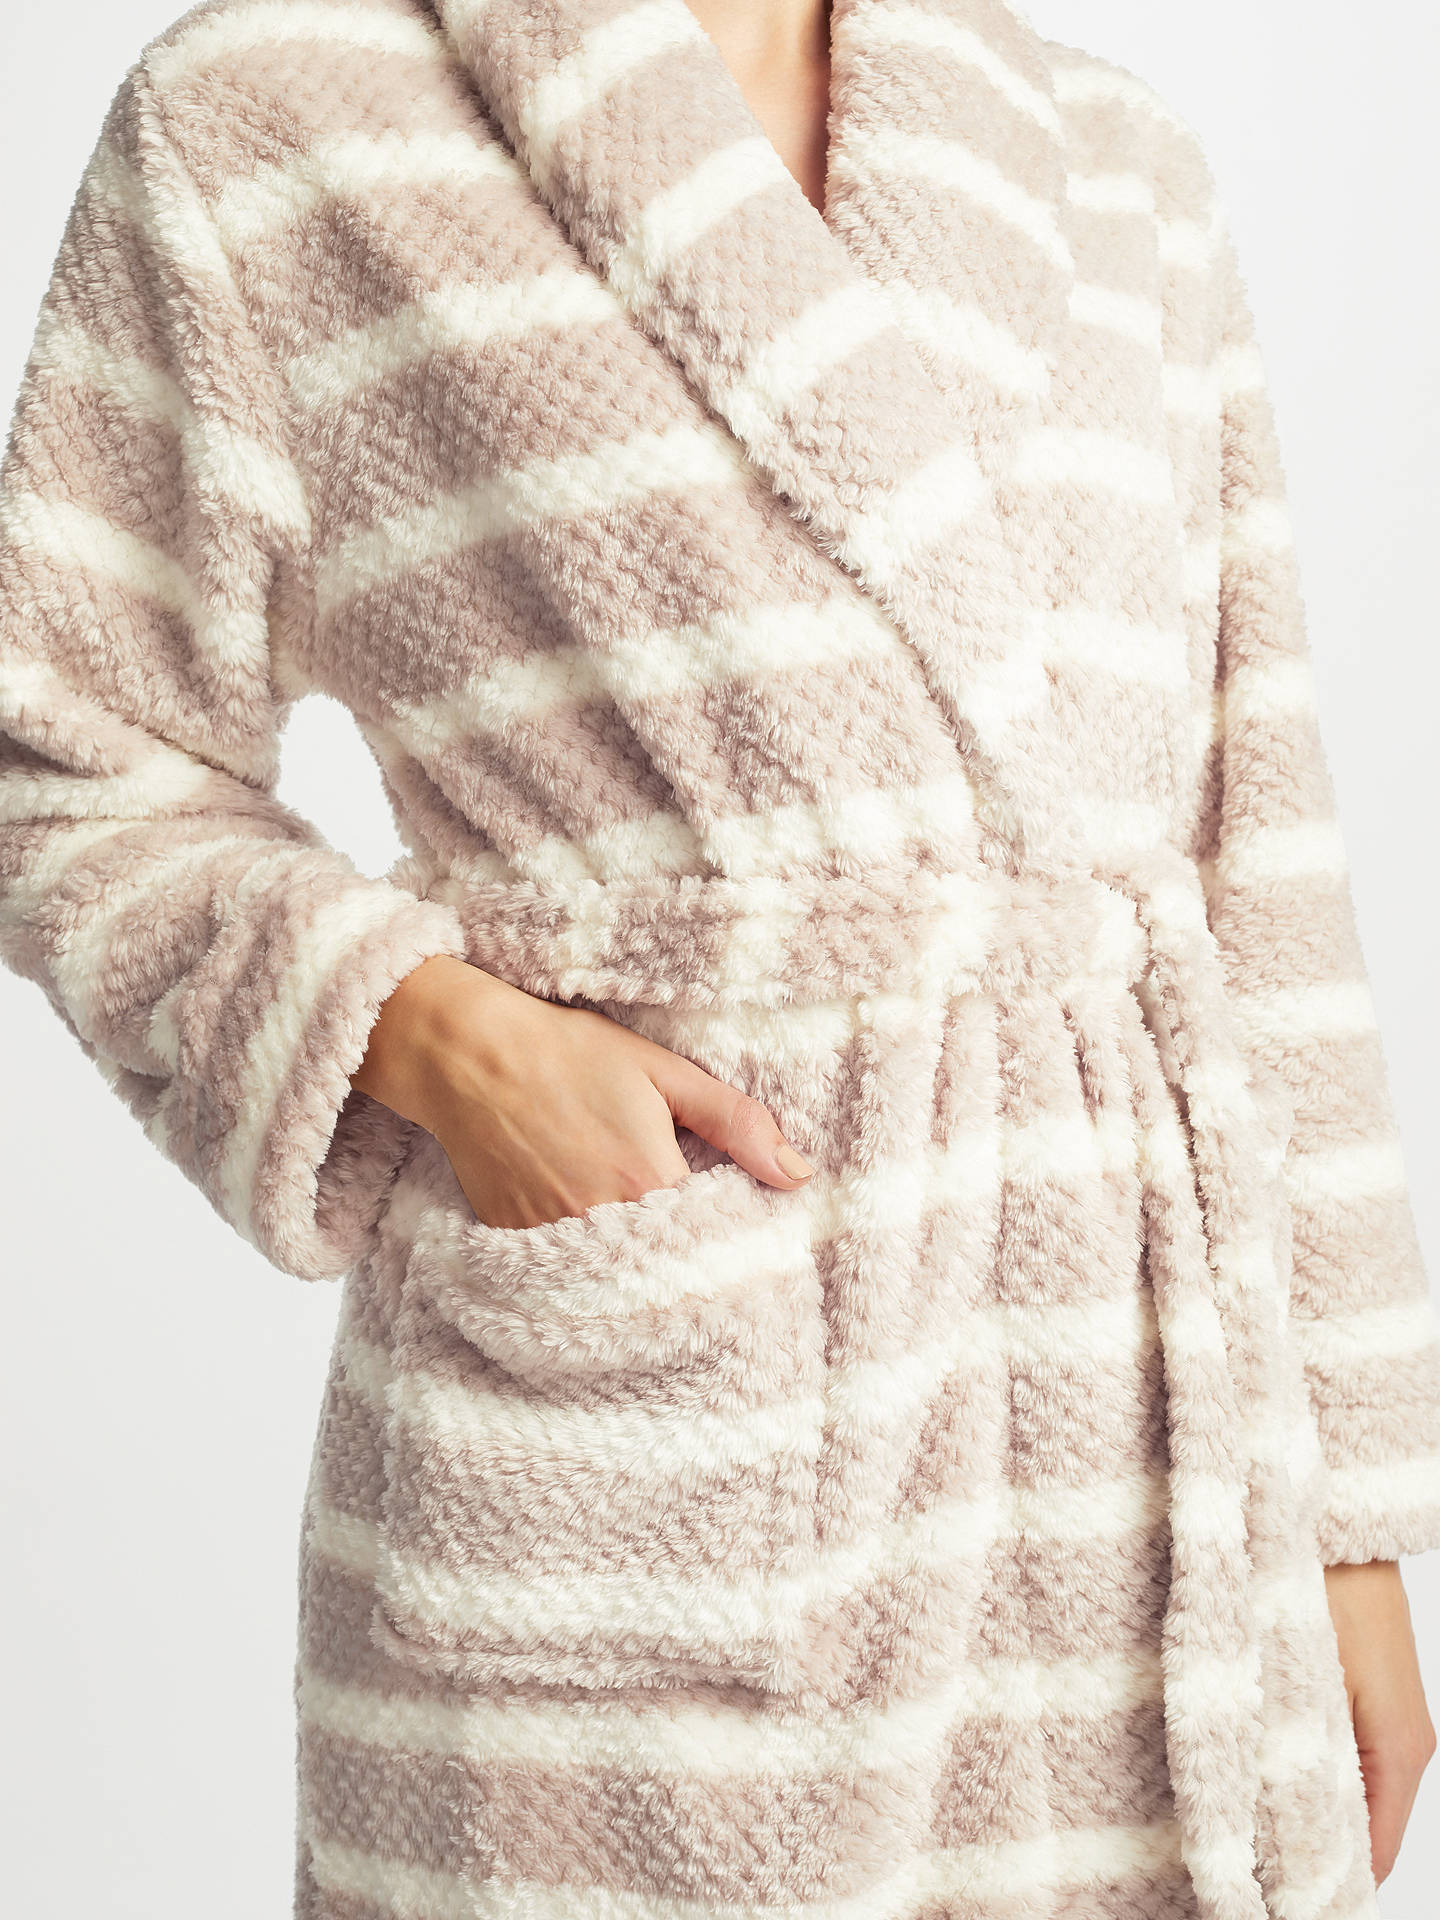 BuyJohn Lewis Stripe Waffle Fleece Dressing Gown, Taupe/Ivory, S Online at johnlewis.com